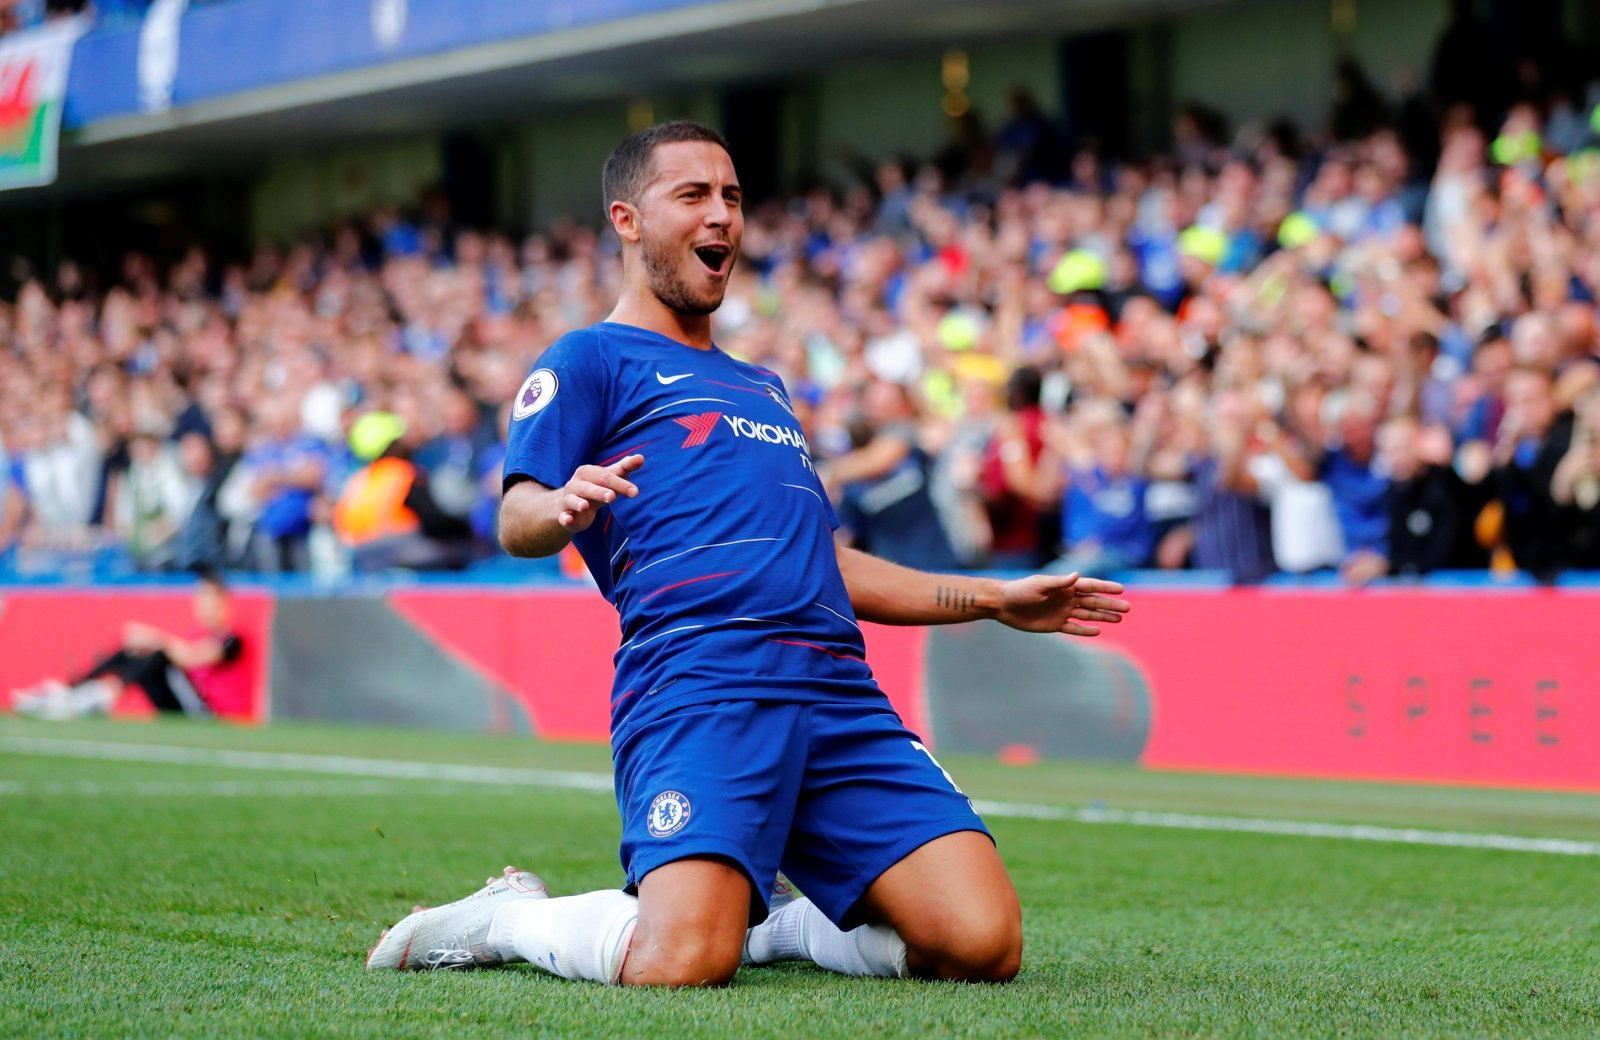 Chelsea fans on Twitter react to Eden Hazard injury news